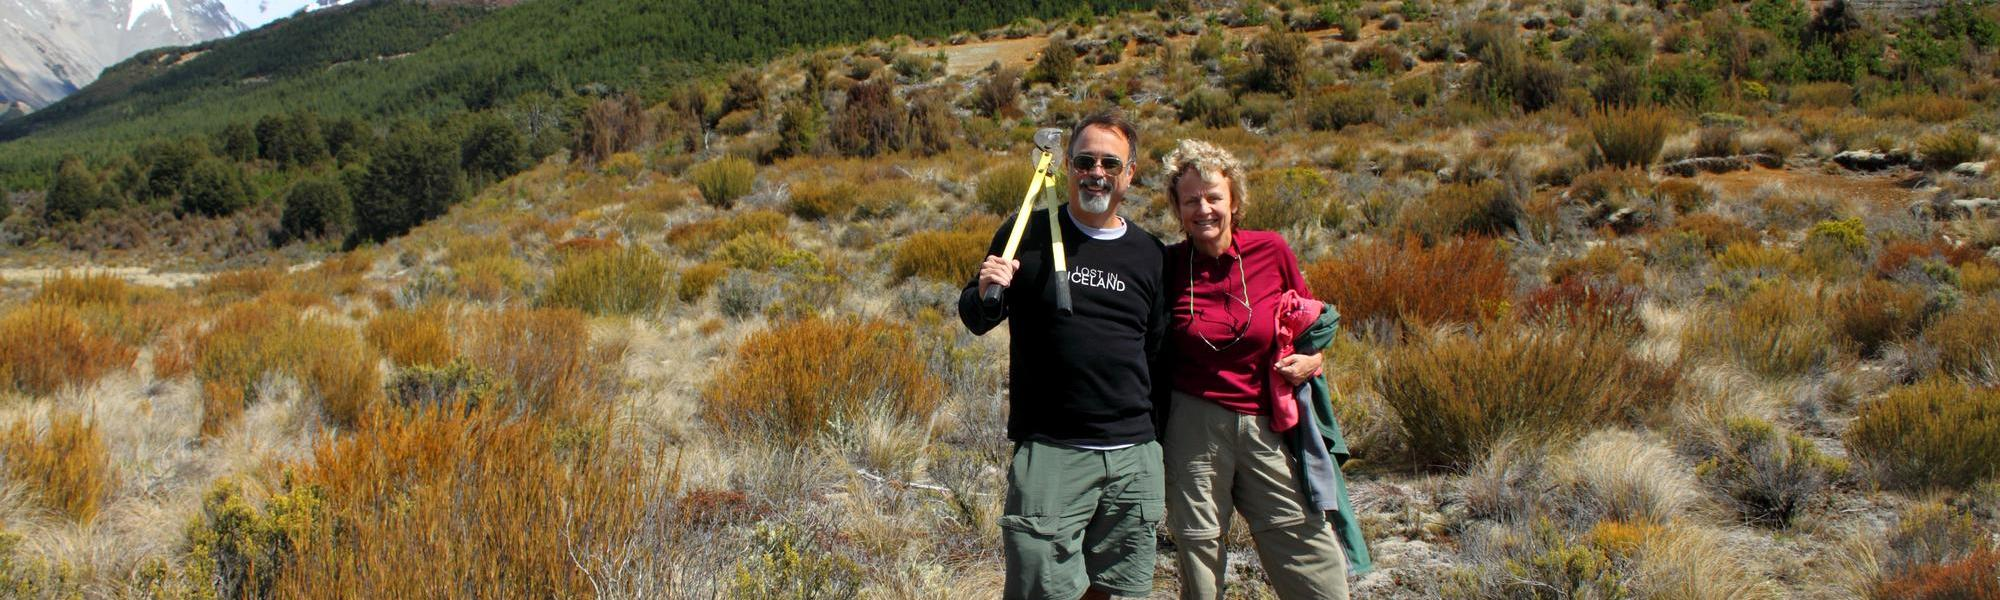 Saving 'Dragon's Tooth' shrublands from invading conifers on the West Coast of New Zealand's South Island.